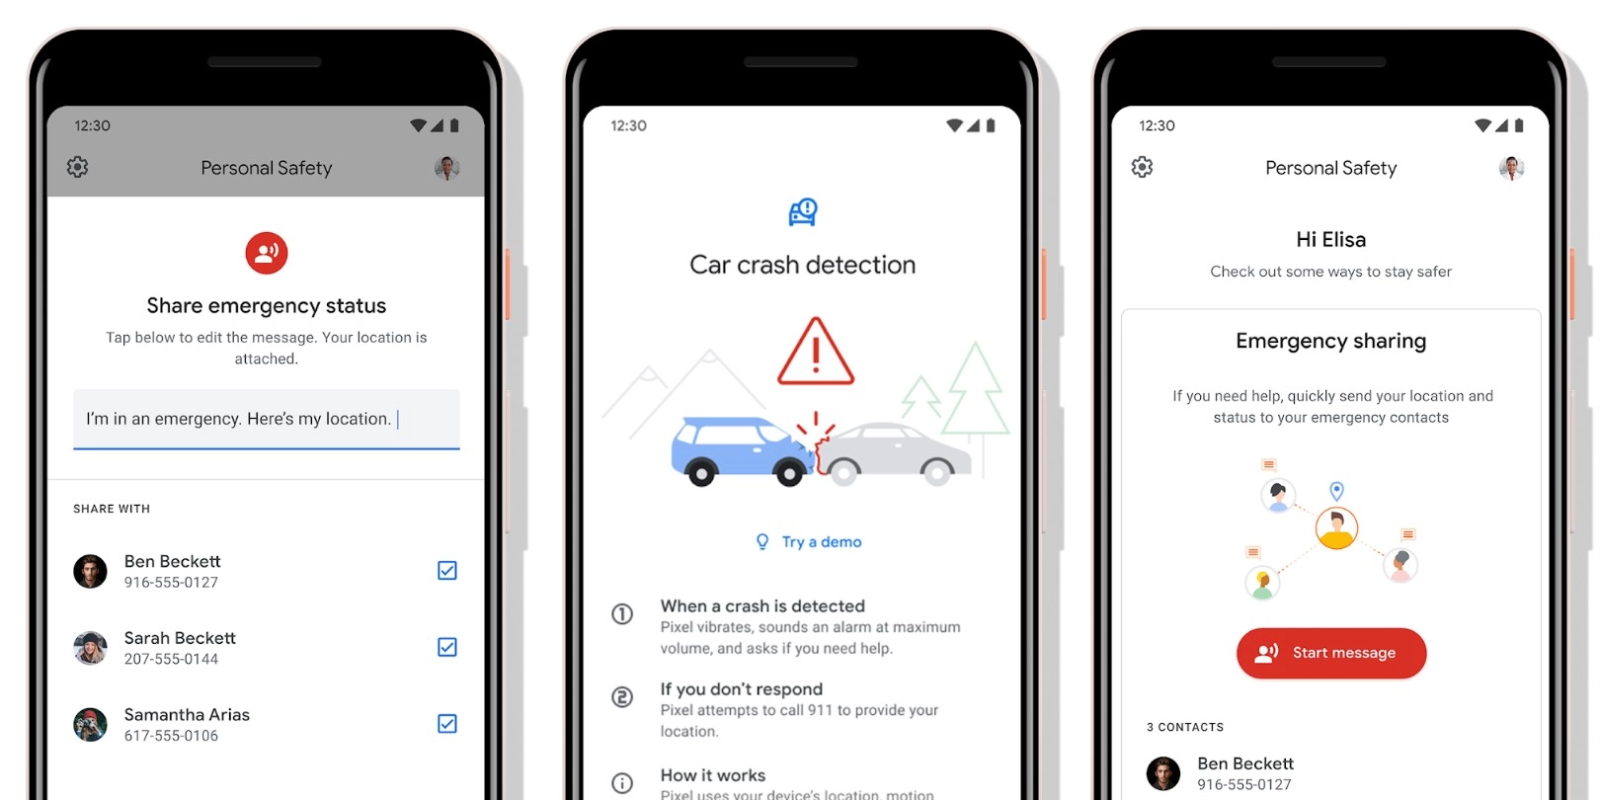 Google to launch 'Personal Safety' app w/ car crash detection for Pixel phones [Gallery]